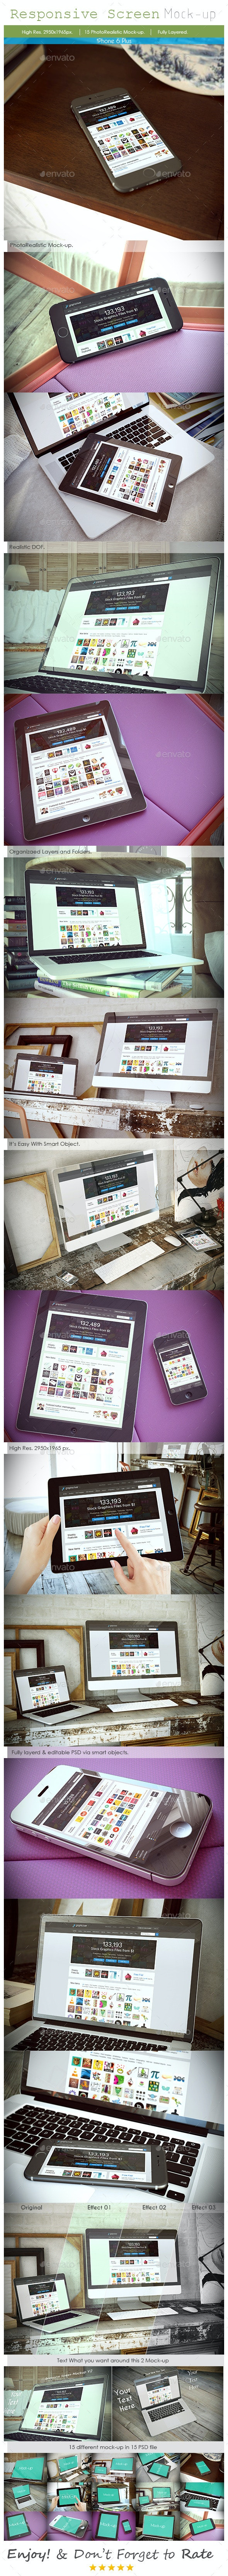 Responsive Device Mockup V2 - Multiple Displays